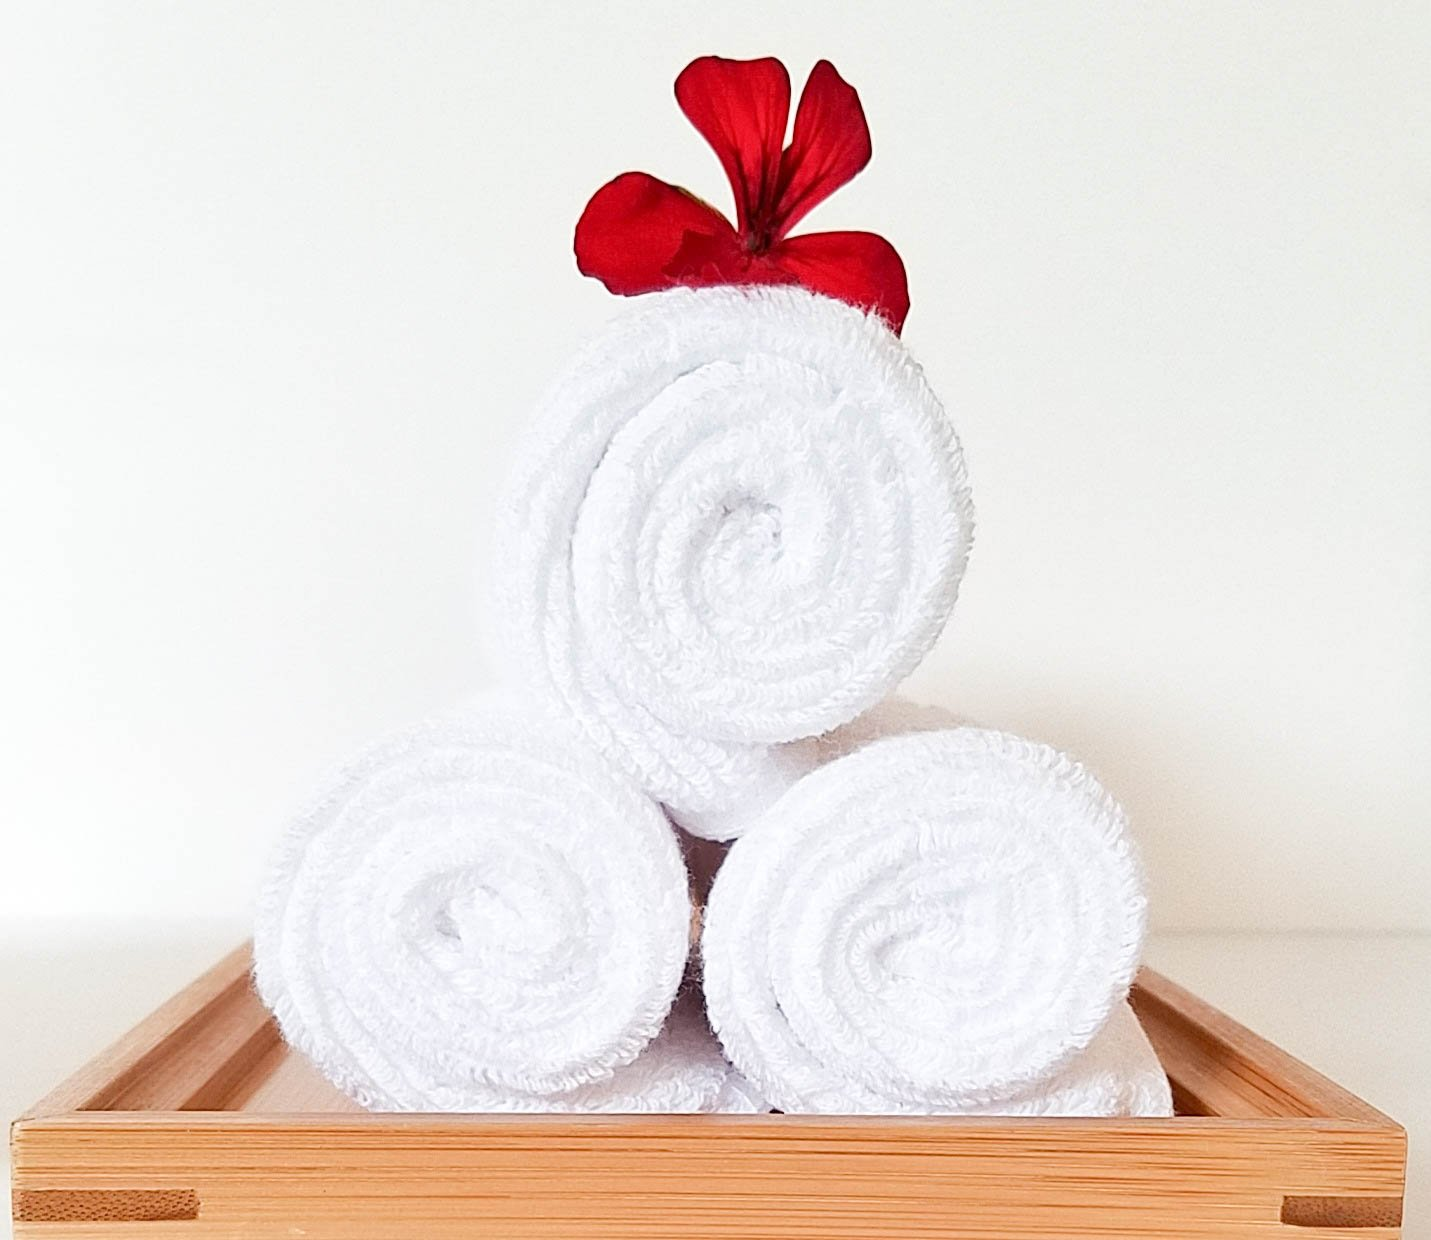 Spa Towels & Wood Tray Set: 6 pack Pure White 100% Cotton Washcloths (Bamboo Wood)